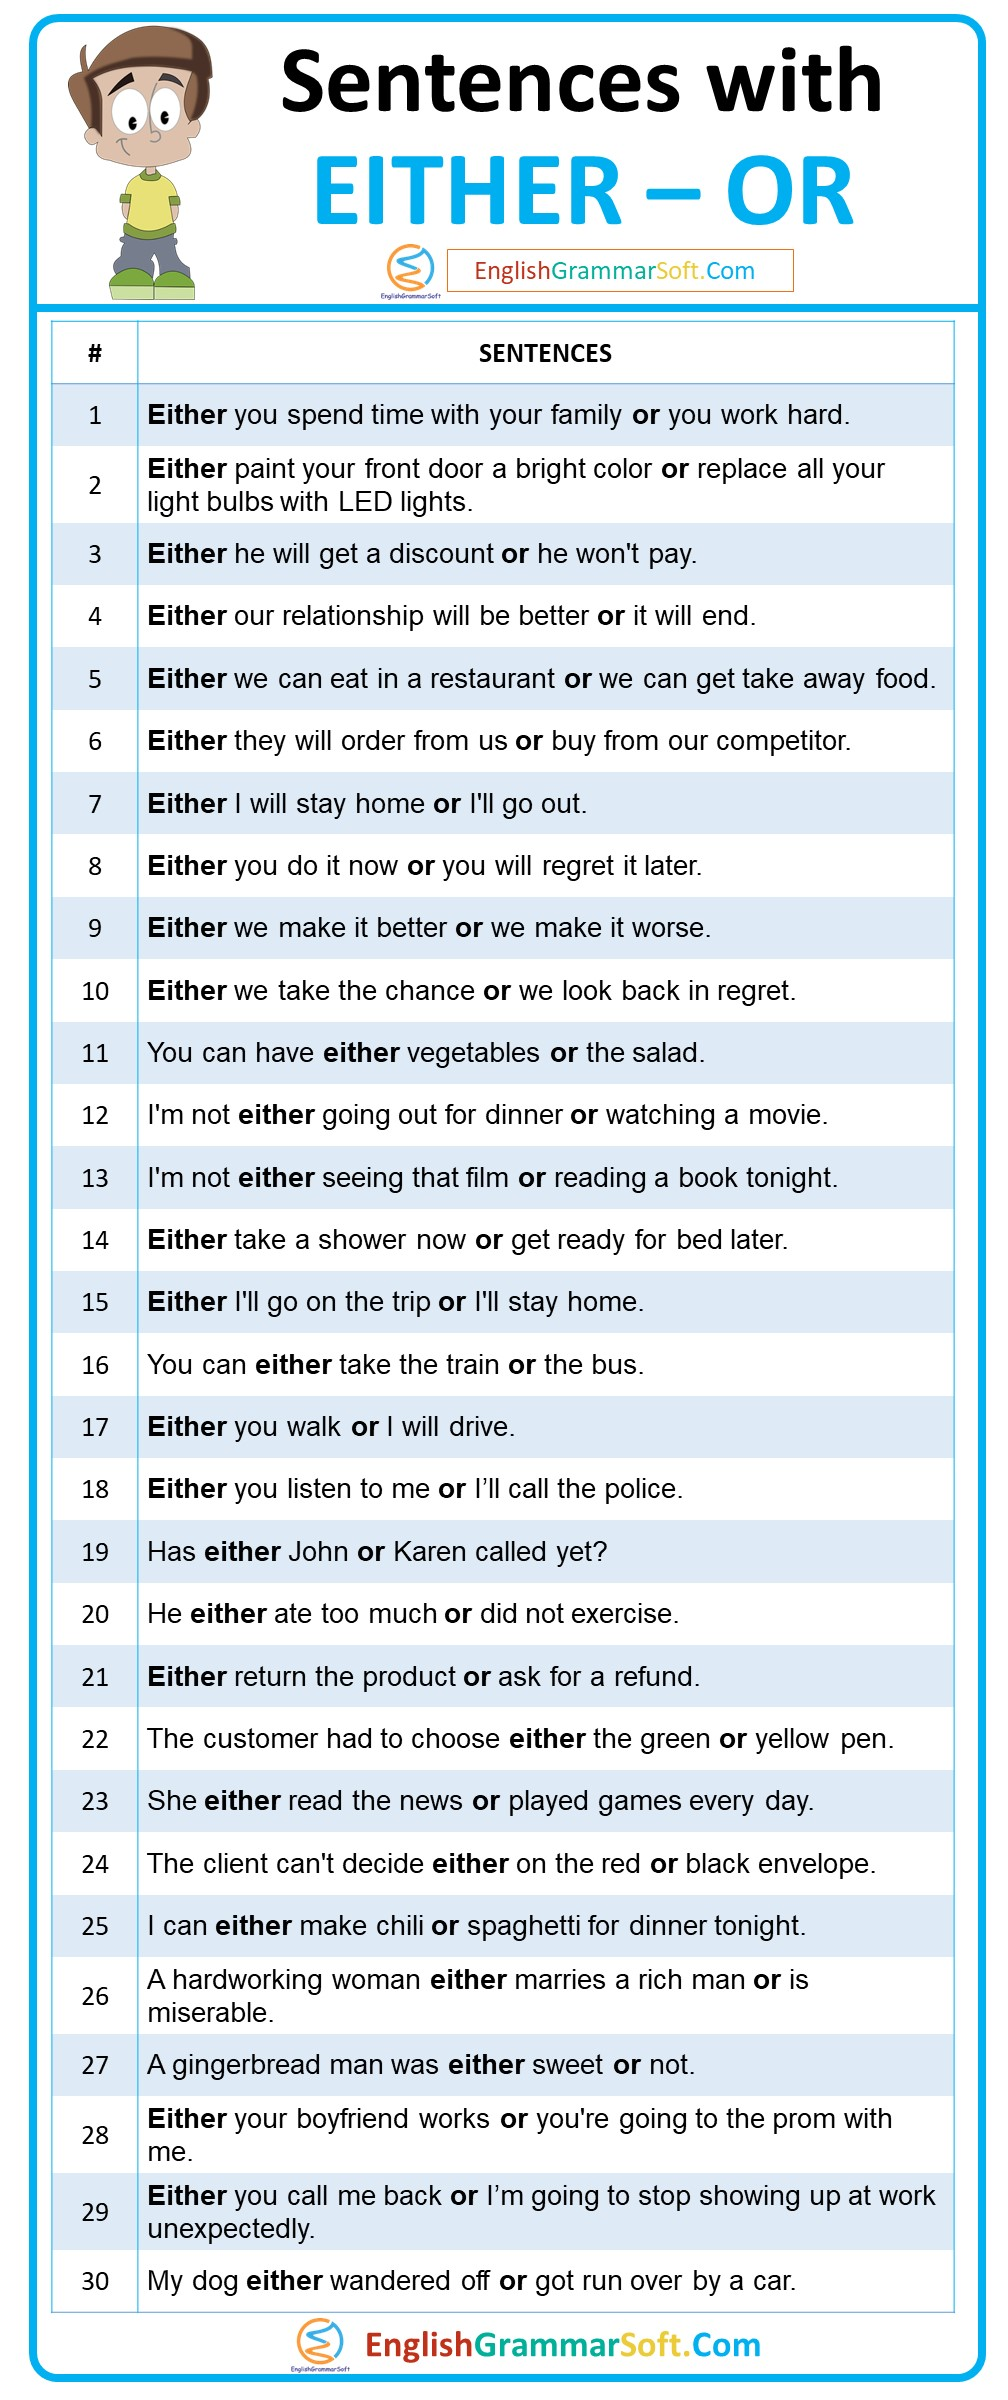 Sentences with Either - or